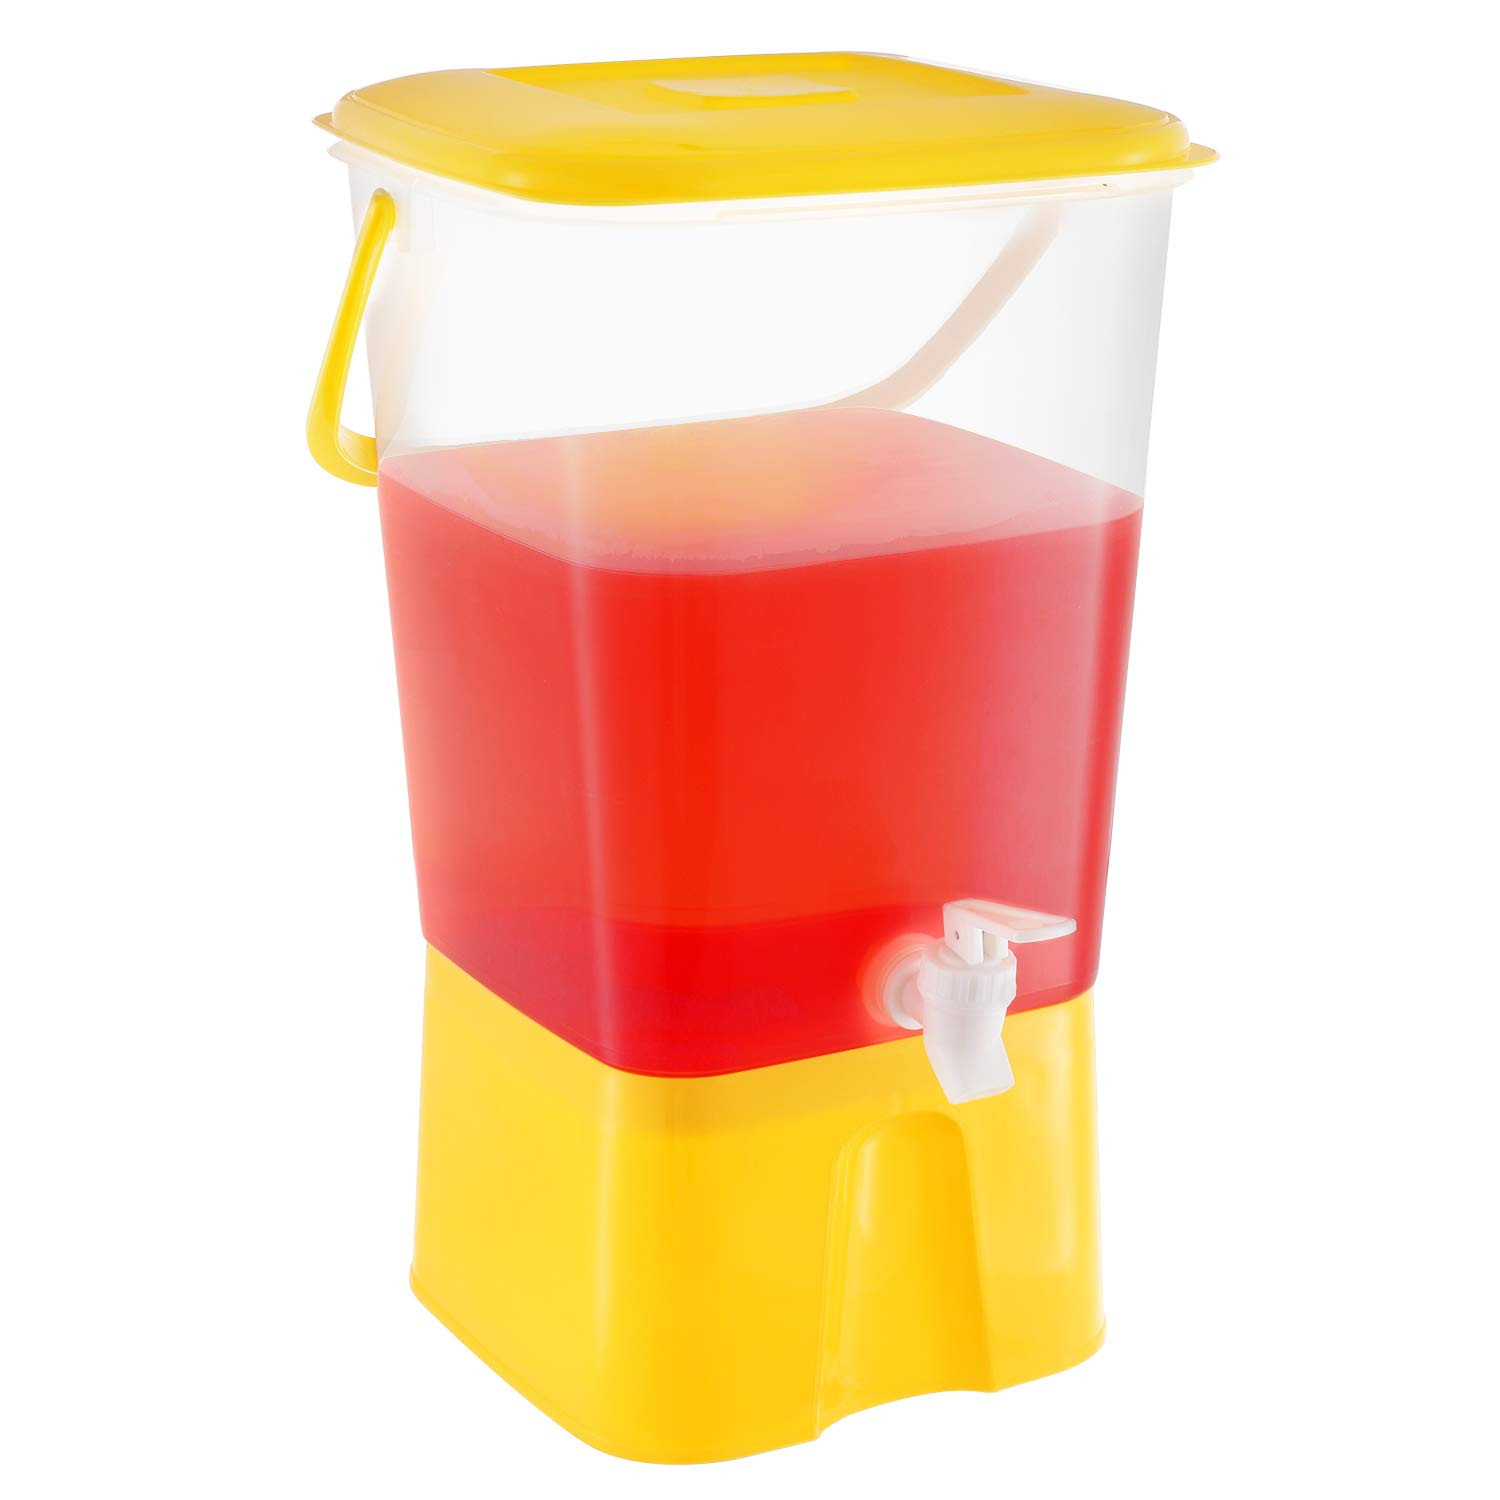 Plastic Party Beverage Dispenser with Stand & Spout, 2.11 Gallon (8L.) Cold Drink, Lemonade, Iced Tea, Juice Unbreakable Server Jar, BPA Free, Yellow